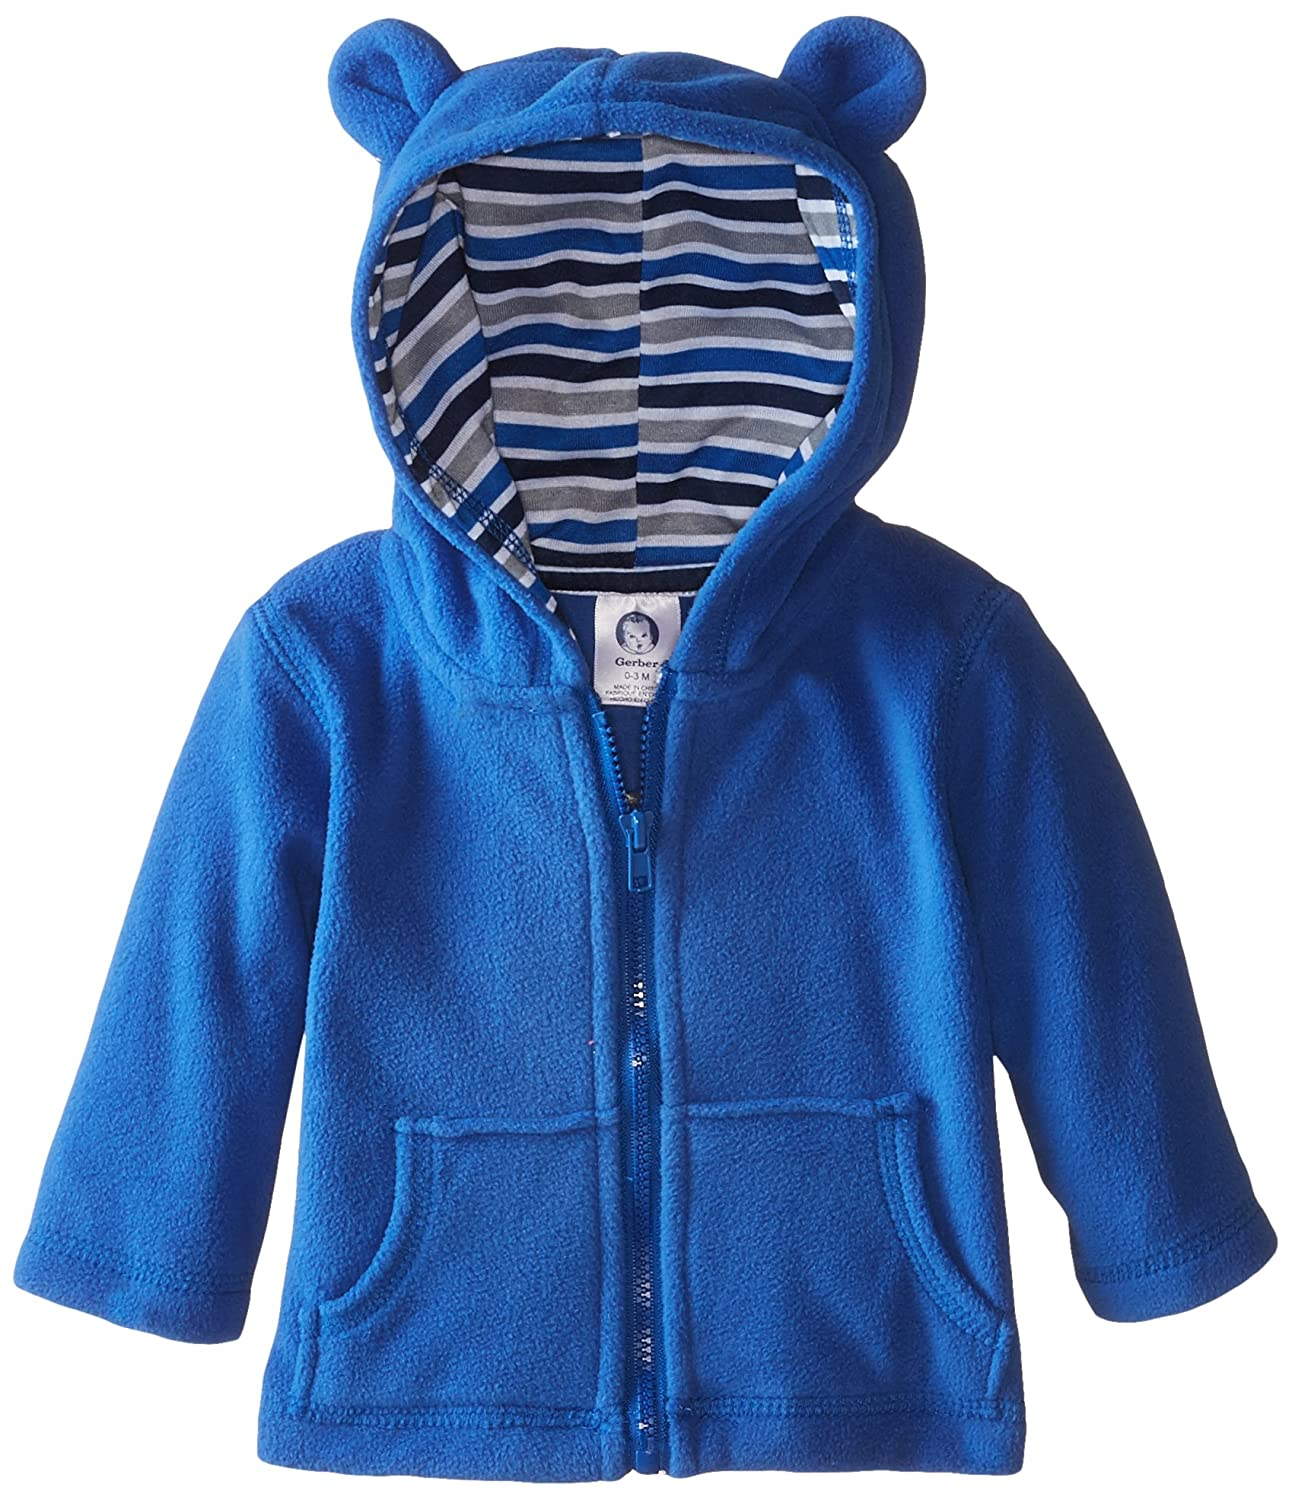 Amazon.com: Gerber Baby Boys' Hooded Micro Fleece Jacket: Clothing